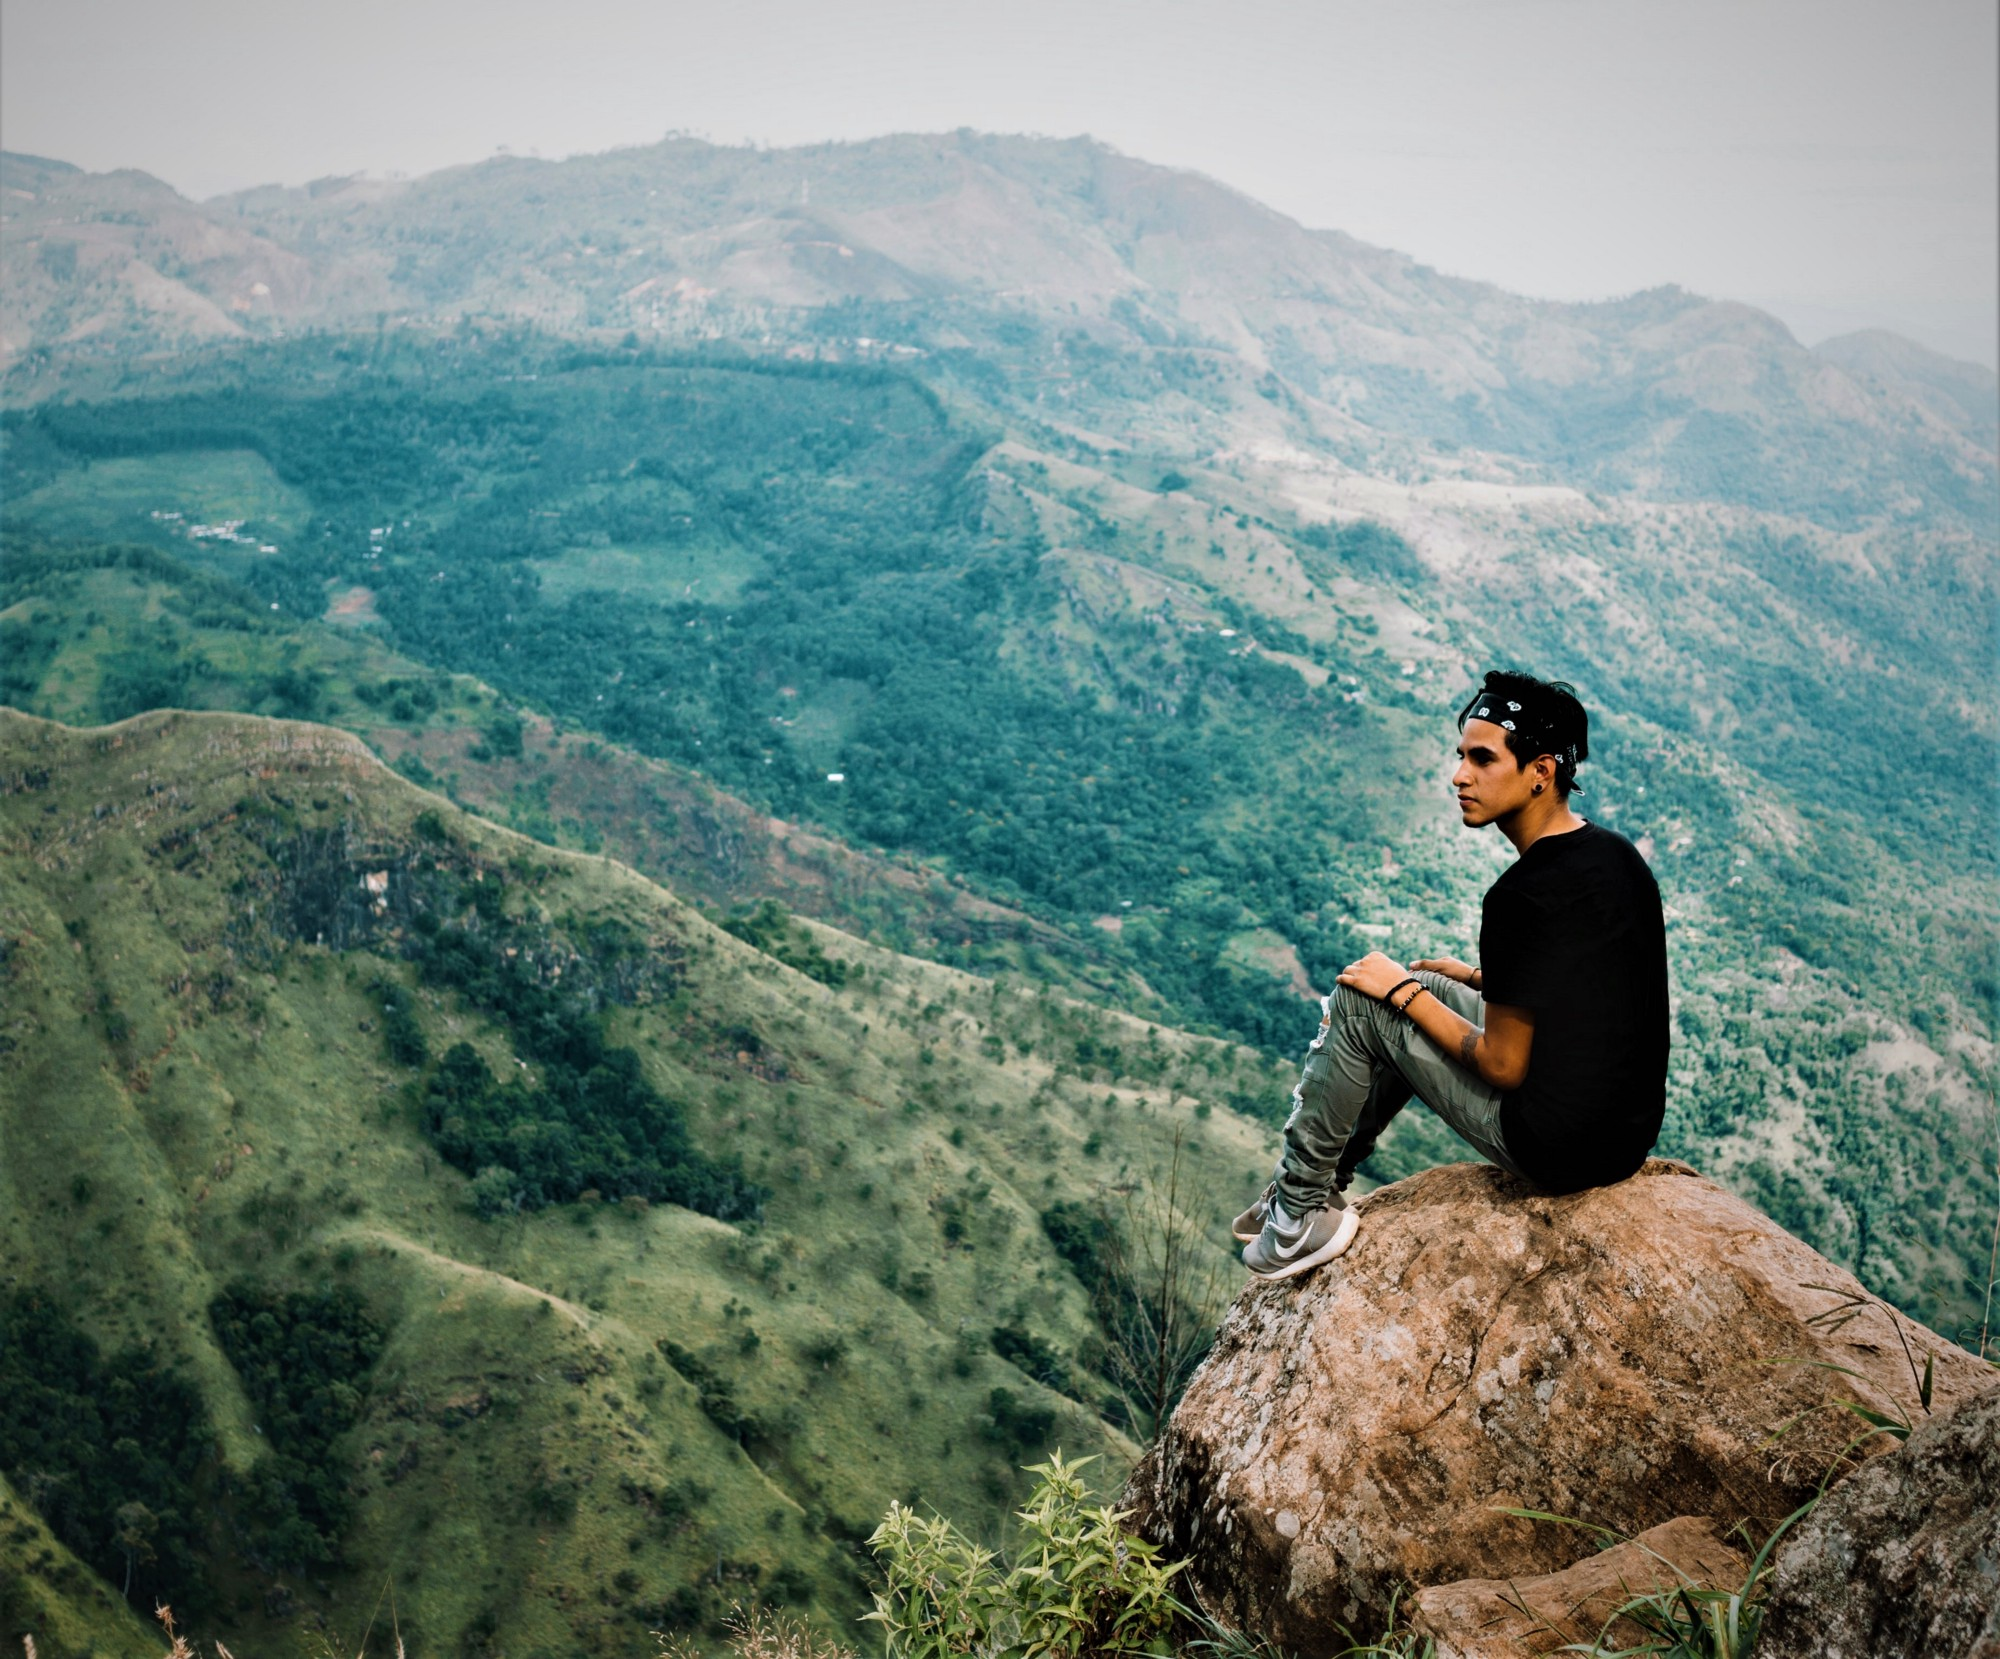 young man sitting on boulder looking to the side backdrop of green hills behind him